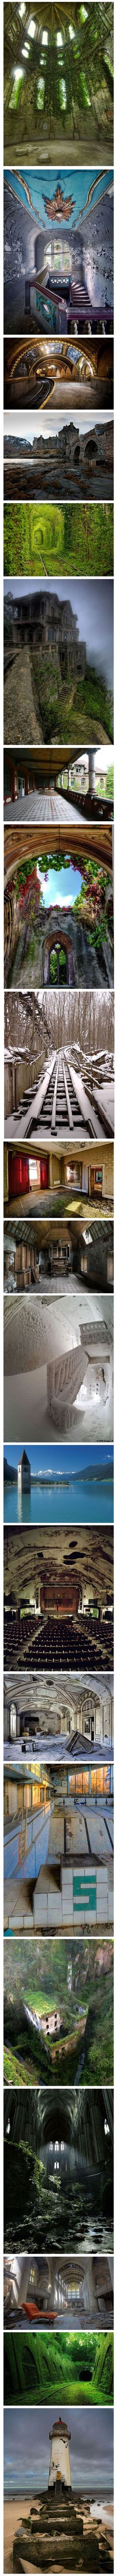 Incredible abandoned places around the world - most of the locations can be found at this website (http://blogof.francescomugnai.com/2013/01/30-of-the-most-beautiful-abandoned-places-and-modern-ruins-ive-ever-seen/), NOT the one your get to by clicking through.